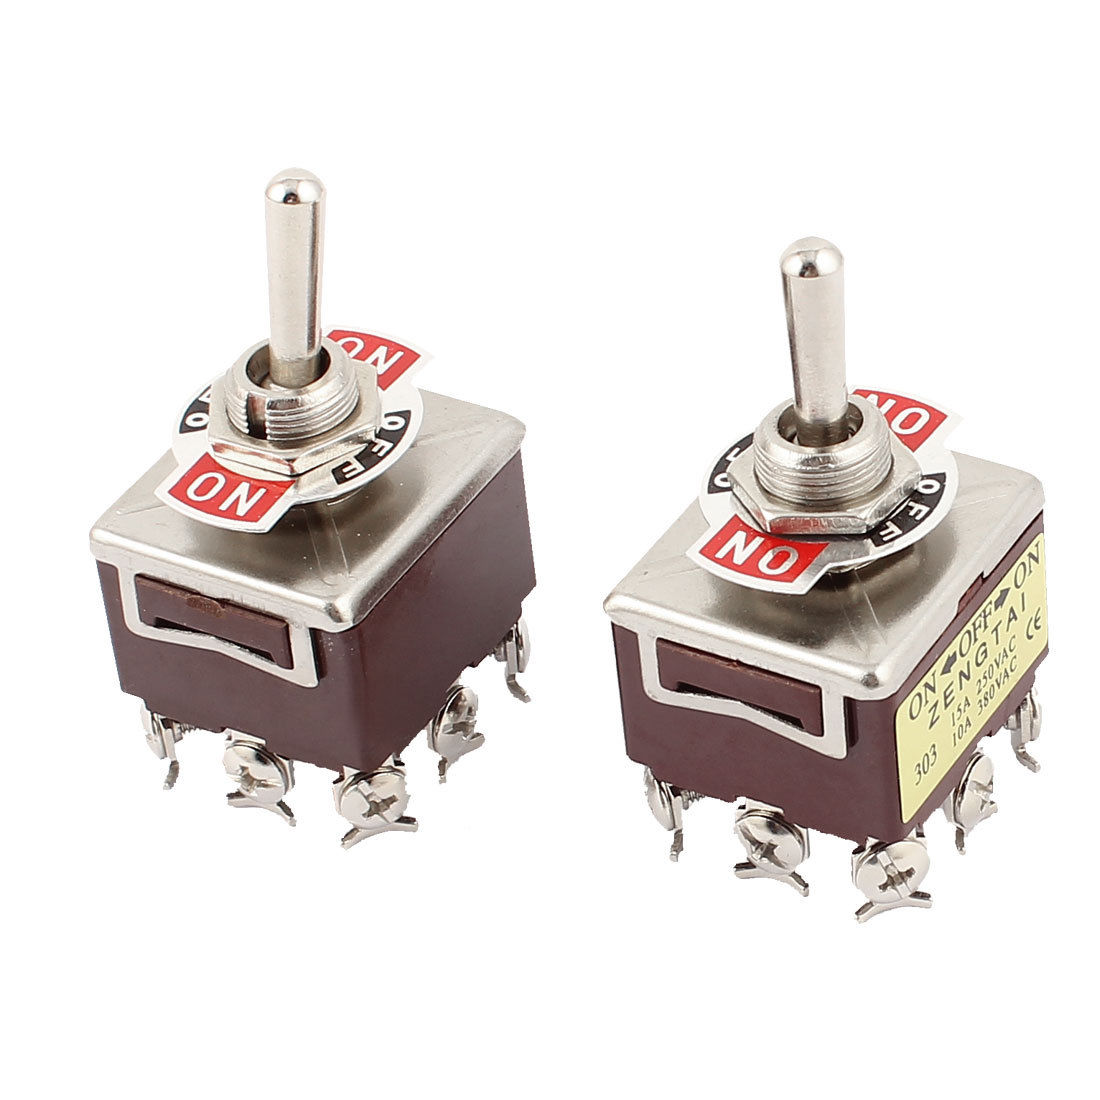 AC 250V 15A 380V 10A 9 Screw ON-OFF-ON 3 Position 3PDT Toggle Switch